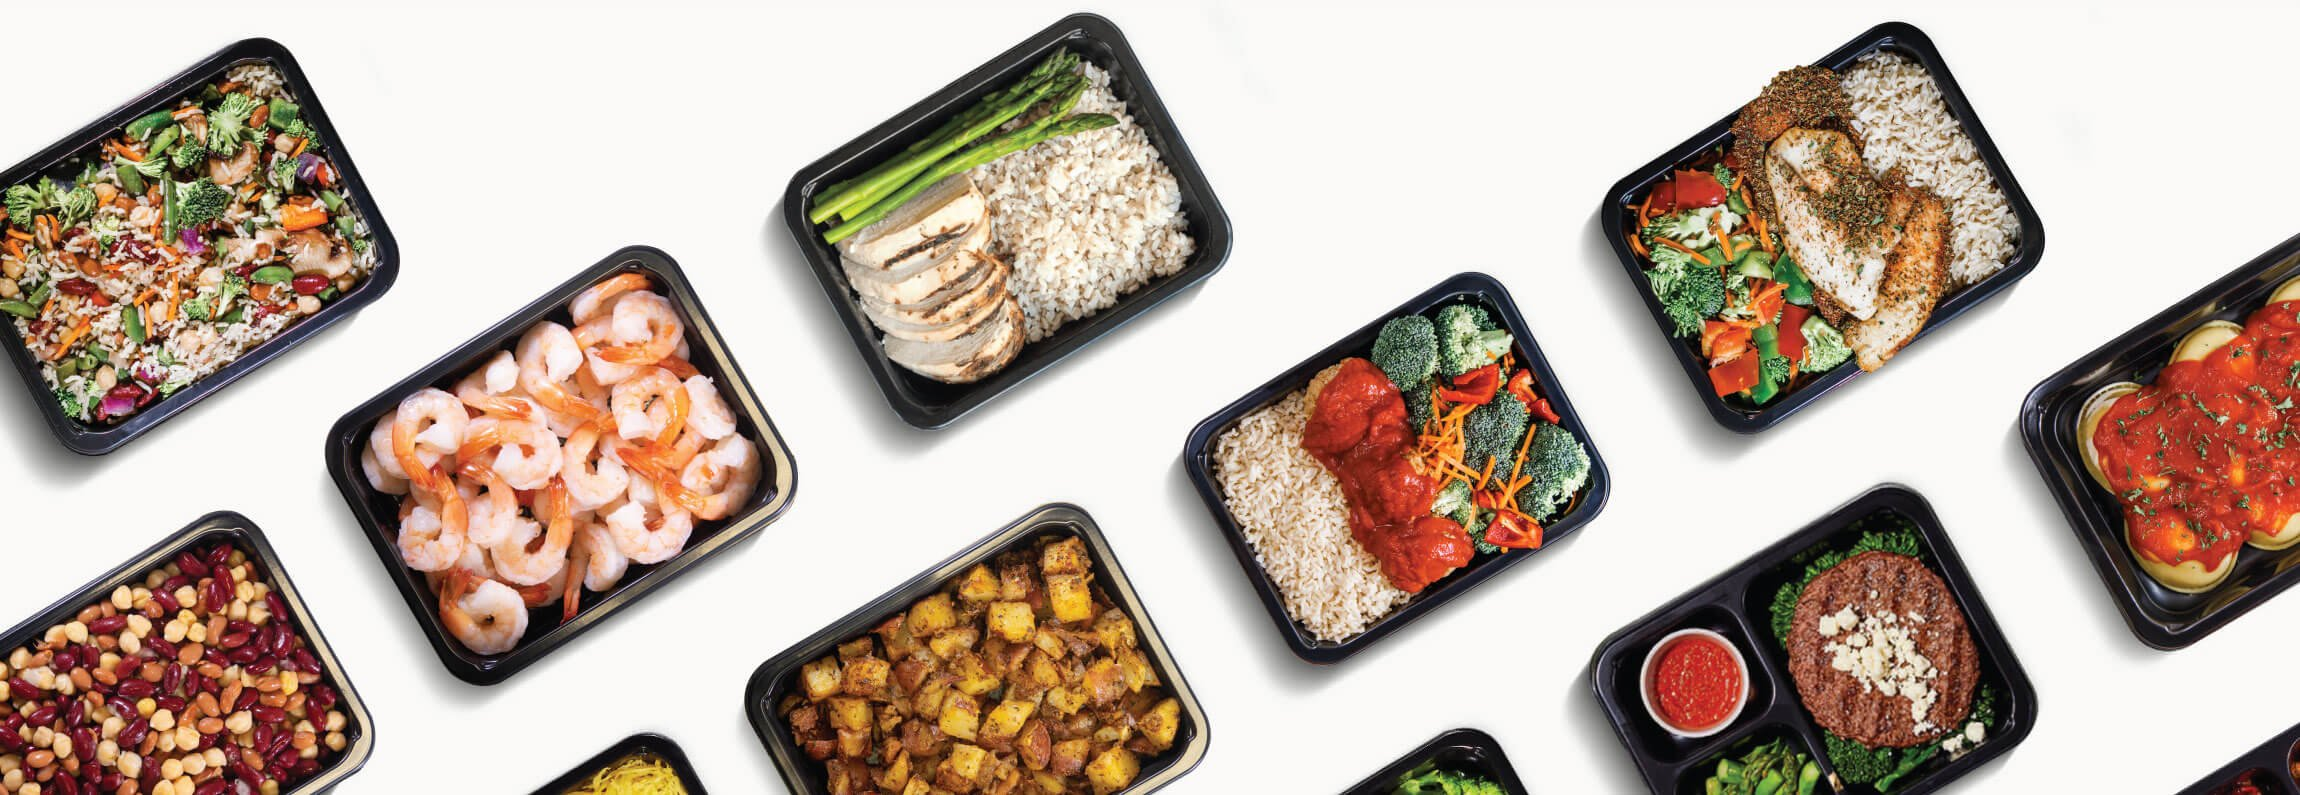 Top down picture of food inside the food container. Perfect healthy Los Angeles Weight Gain meal assortment